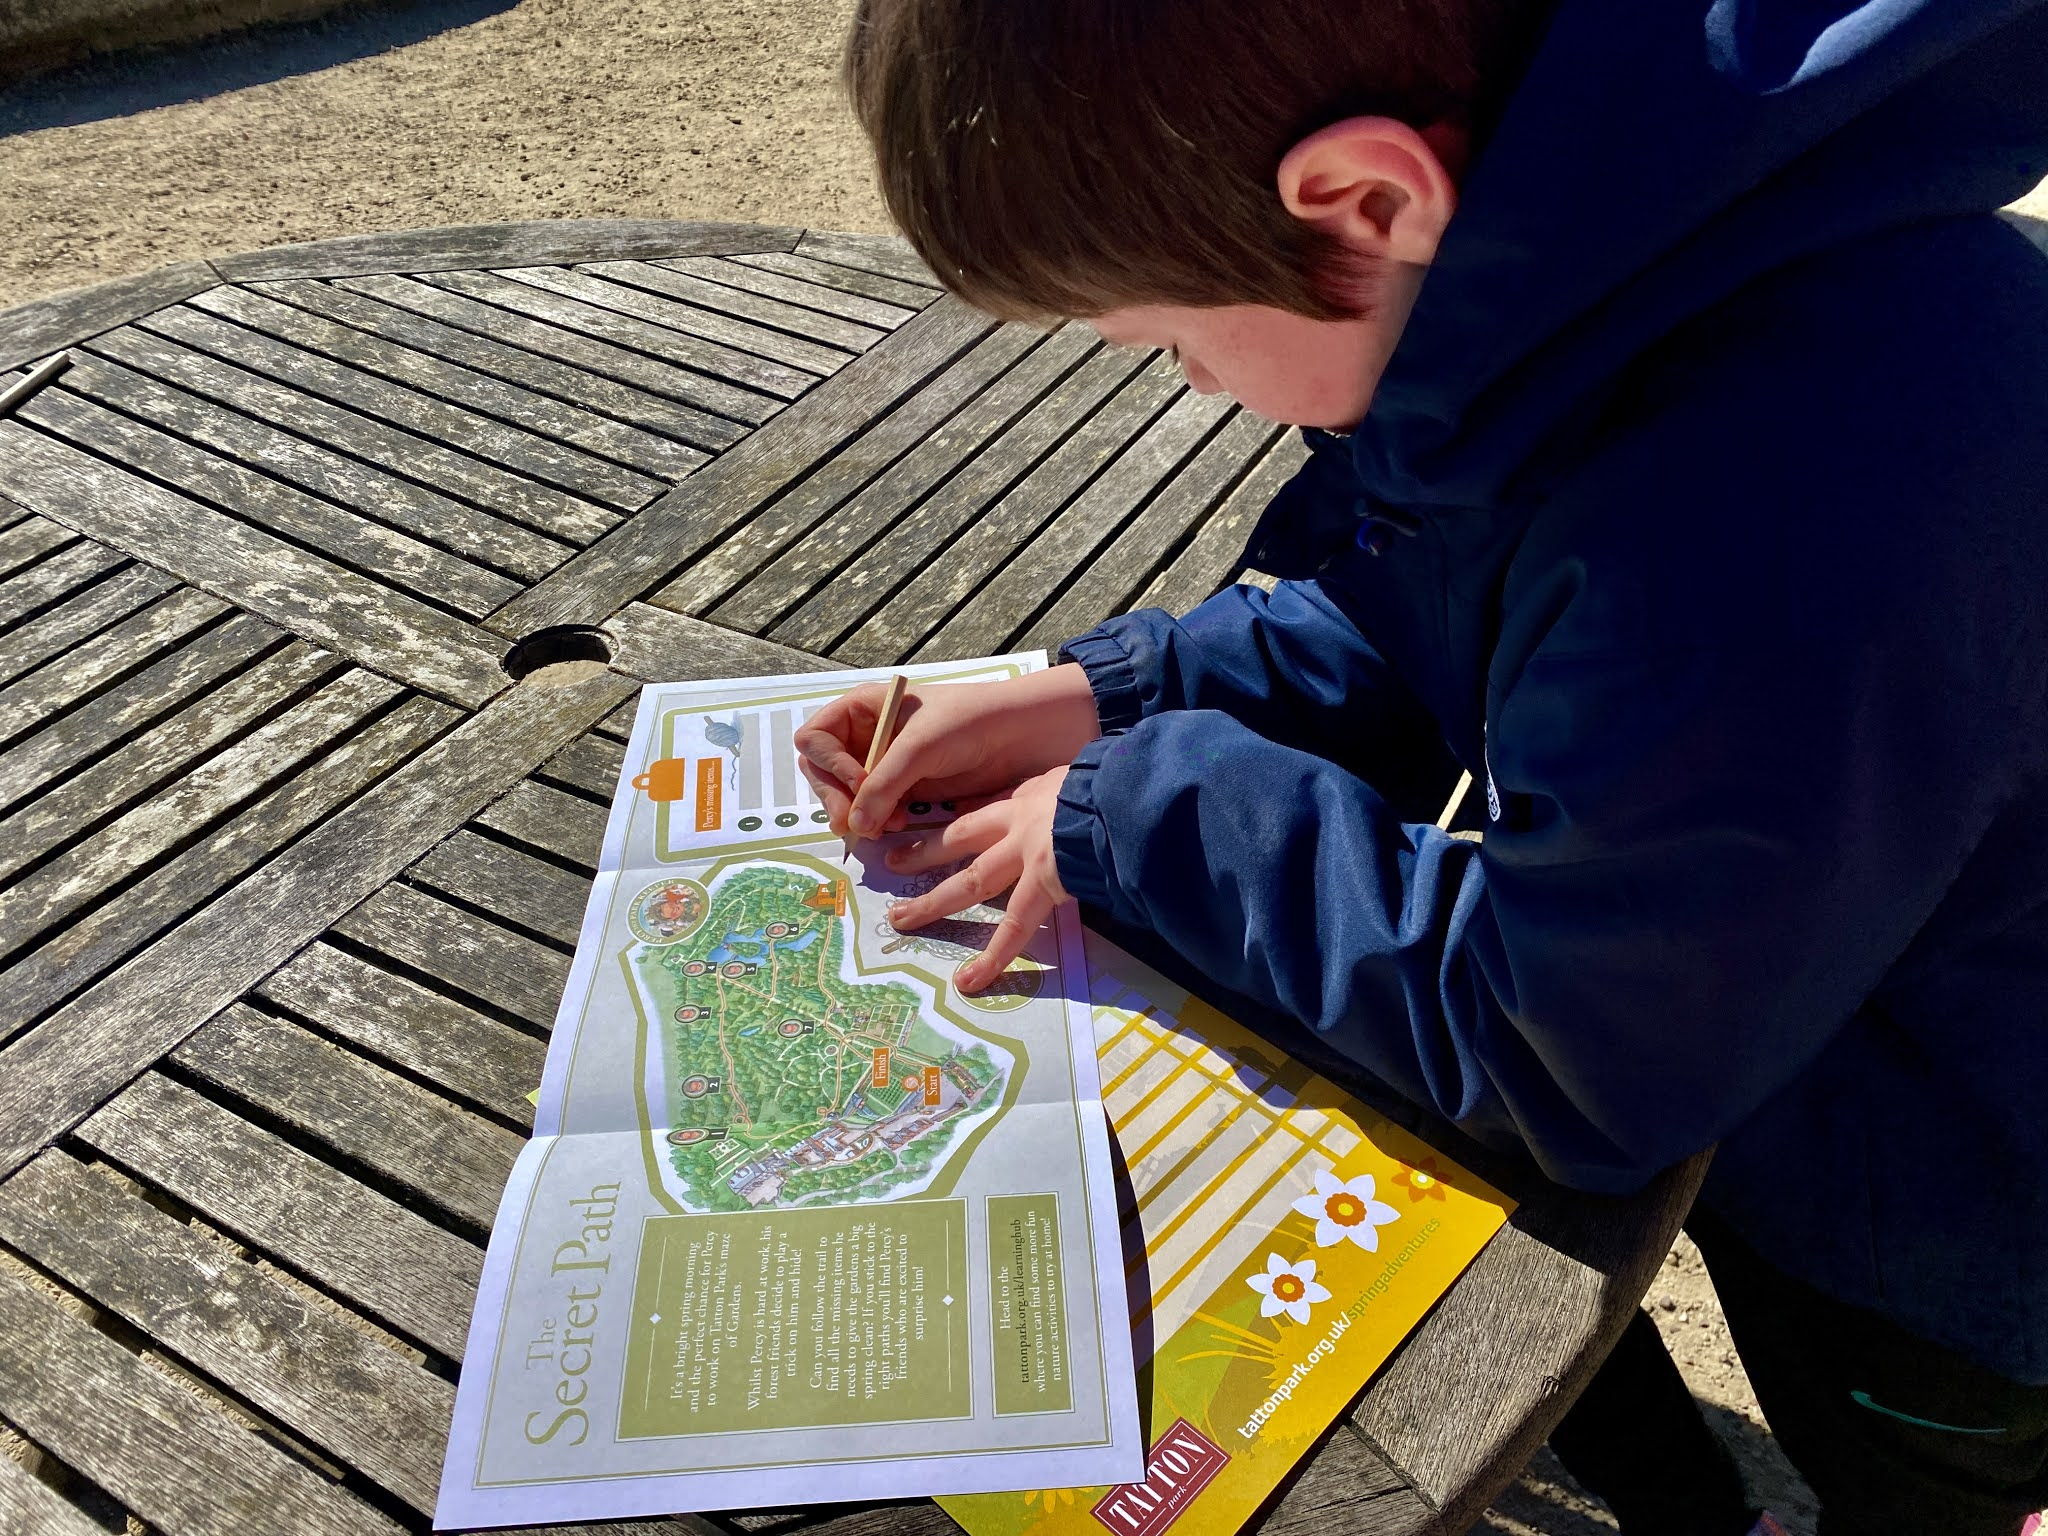 boy looking at a trail map